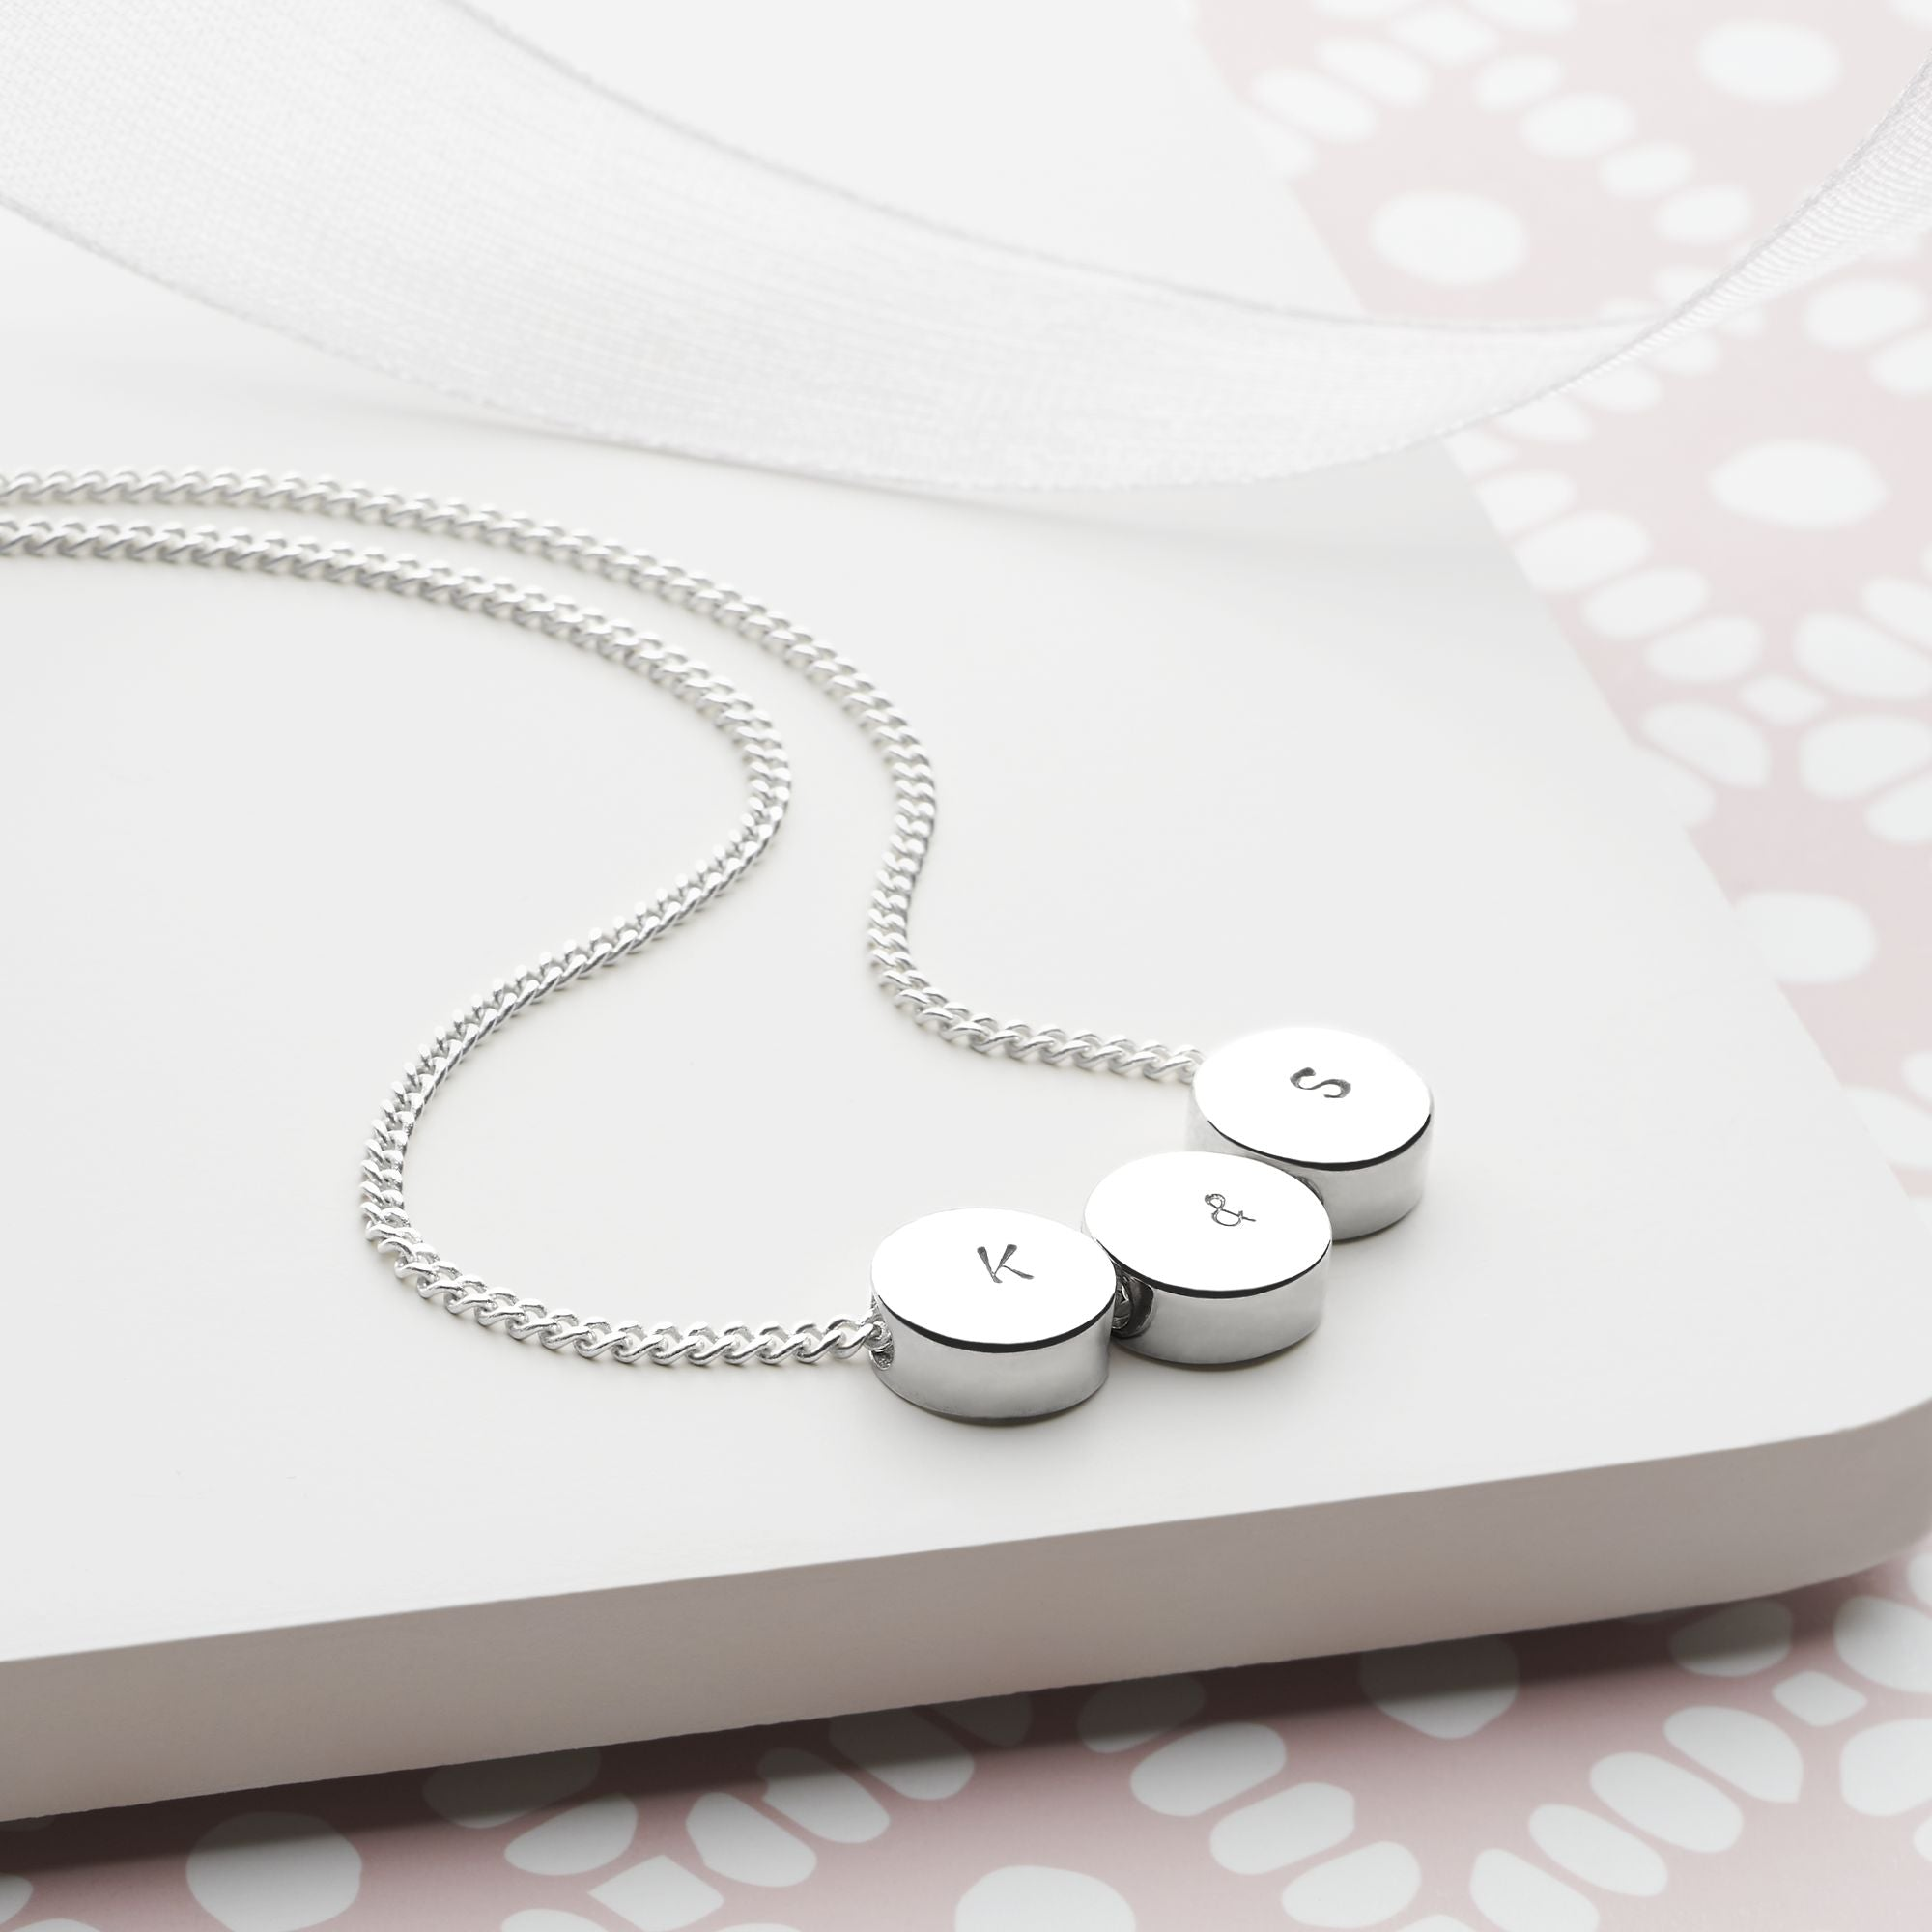 Personalised Silver Bead Necklace (P28991)